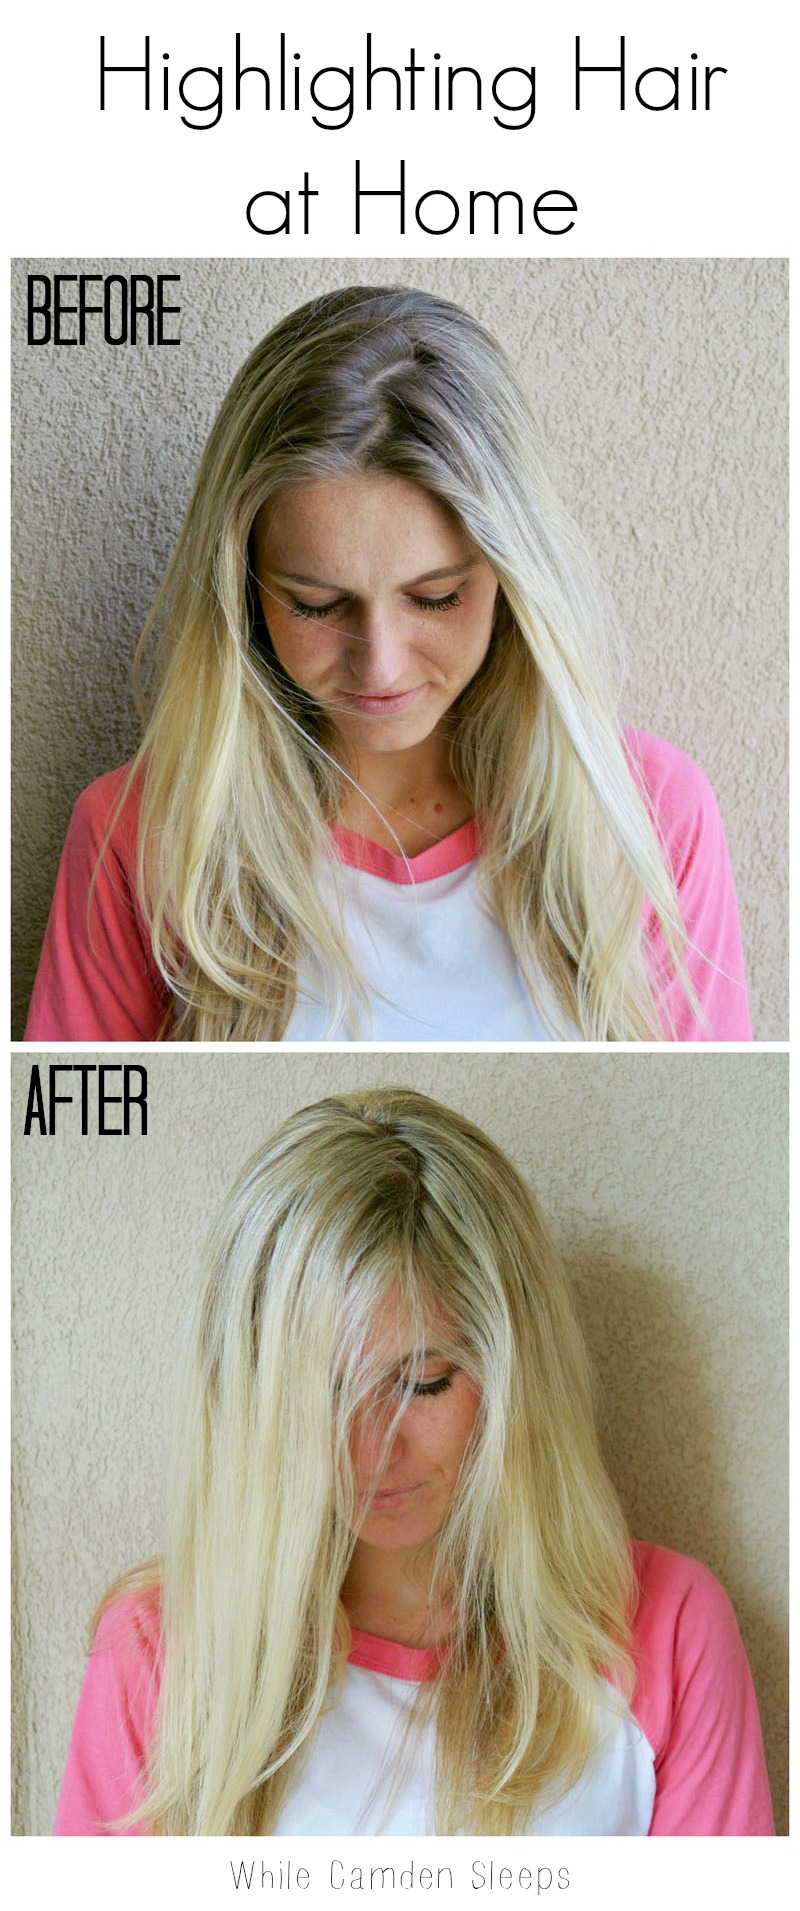 Refashioninghair highlighting hair at home tutorial on how to highlight hair at home using stuff from sallys or amazon theres pmusecretfo Images